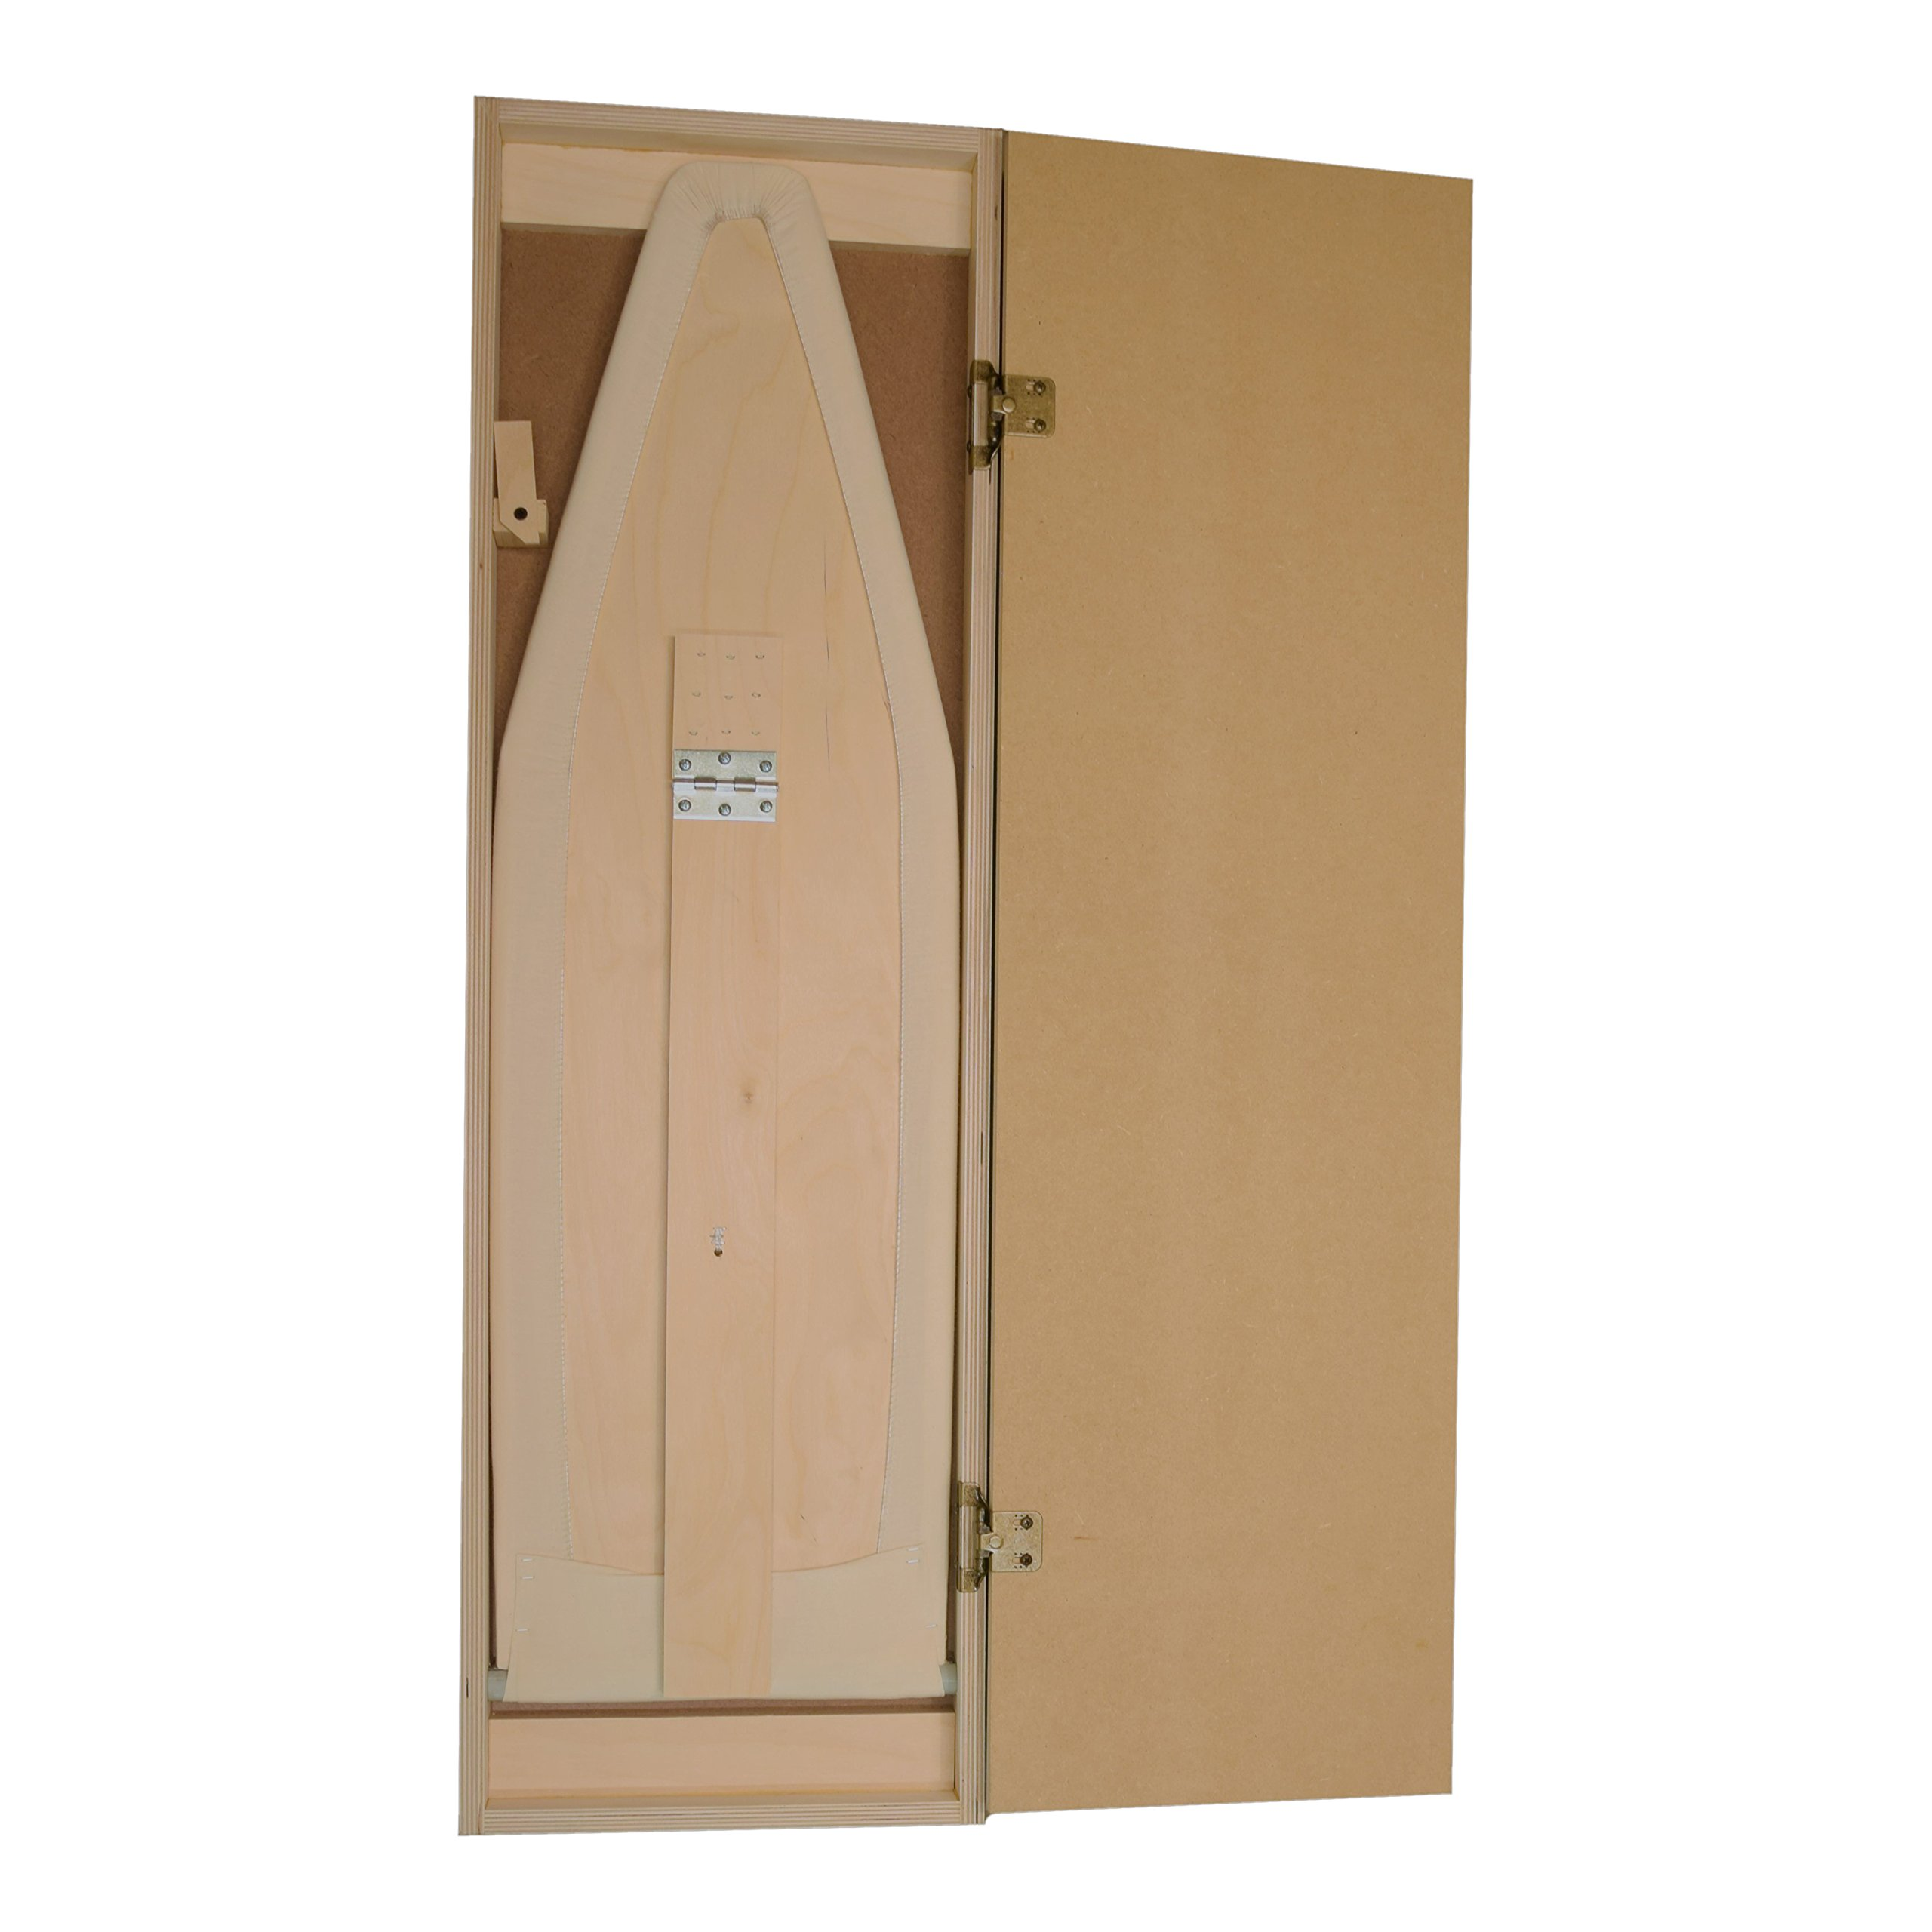 Built-In Ironing Board Cabinet, Made in USA, Raw Wood, Wall Mount or Recessed by IronEase (Image #5)